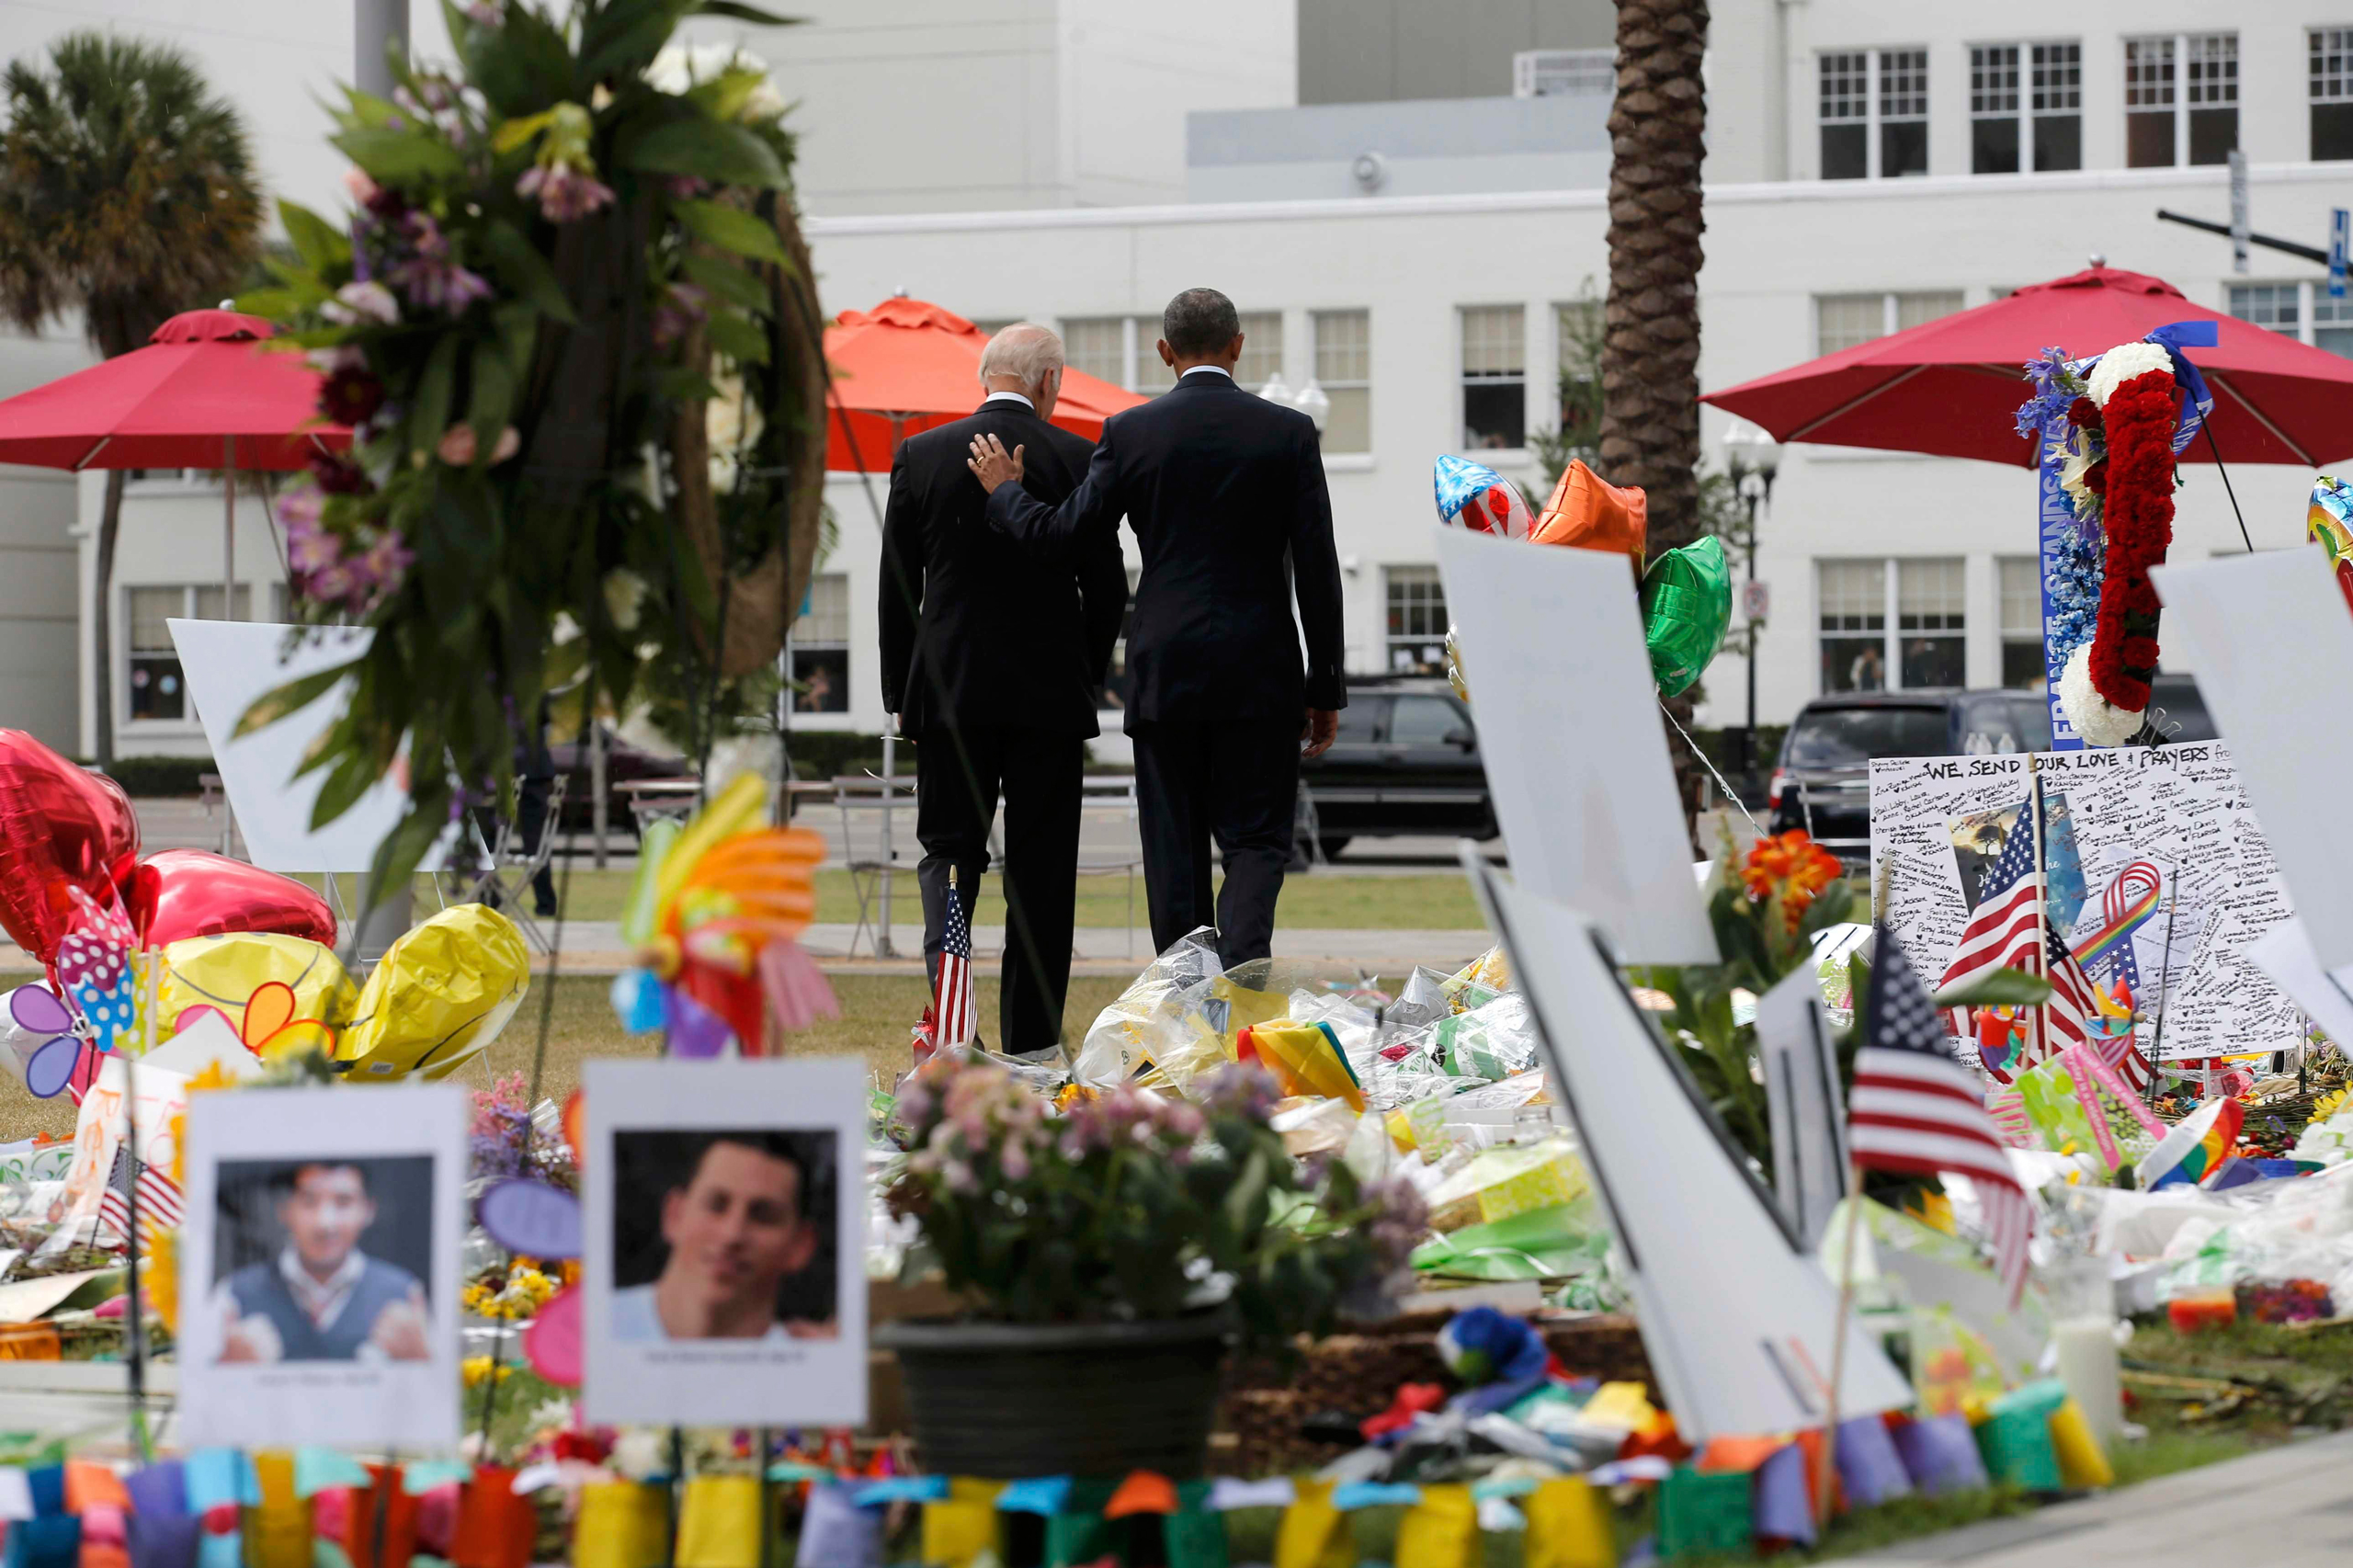 President Barack Obama and Vice President Joe Biden depart a makeshift memorial after placing flowers in memory of shooting victims of the massacre at a gay nightclub in Orlando, Fla., on June 16, 2016.